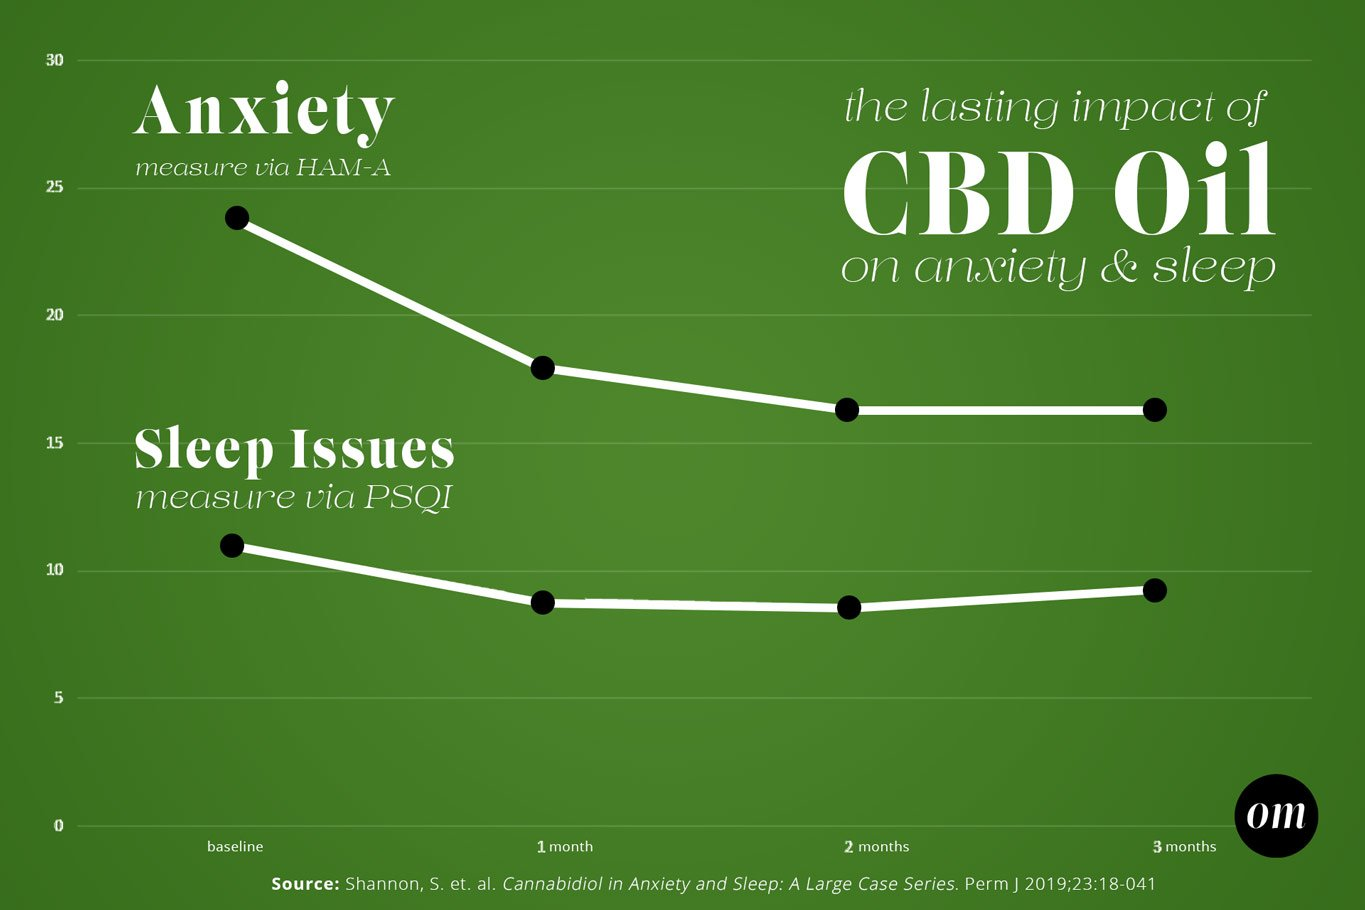 Infographic Detailing the Influence of CBD Oil on Anxiety and Sleep